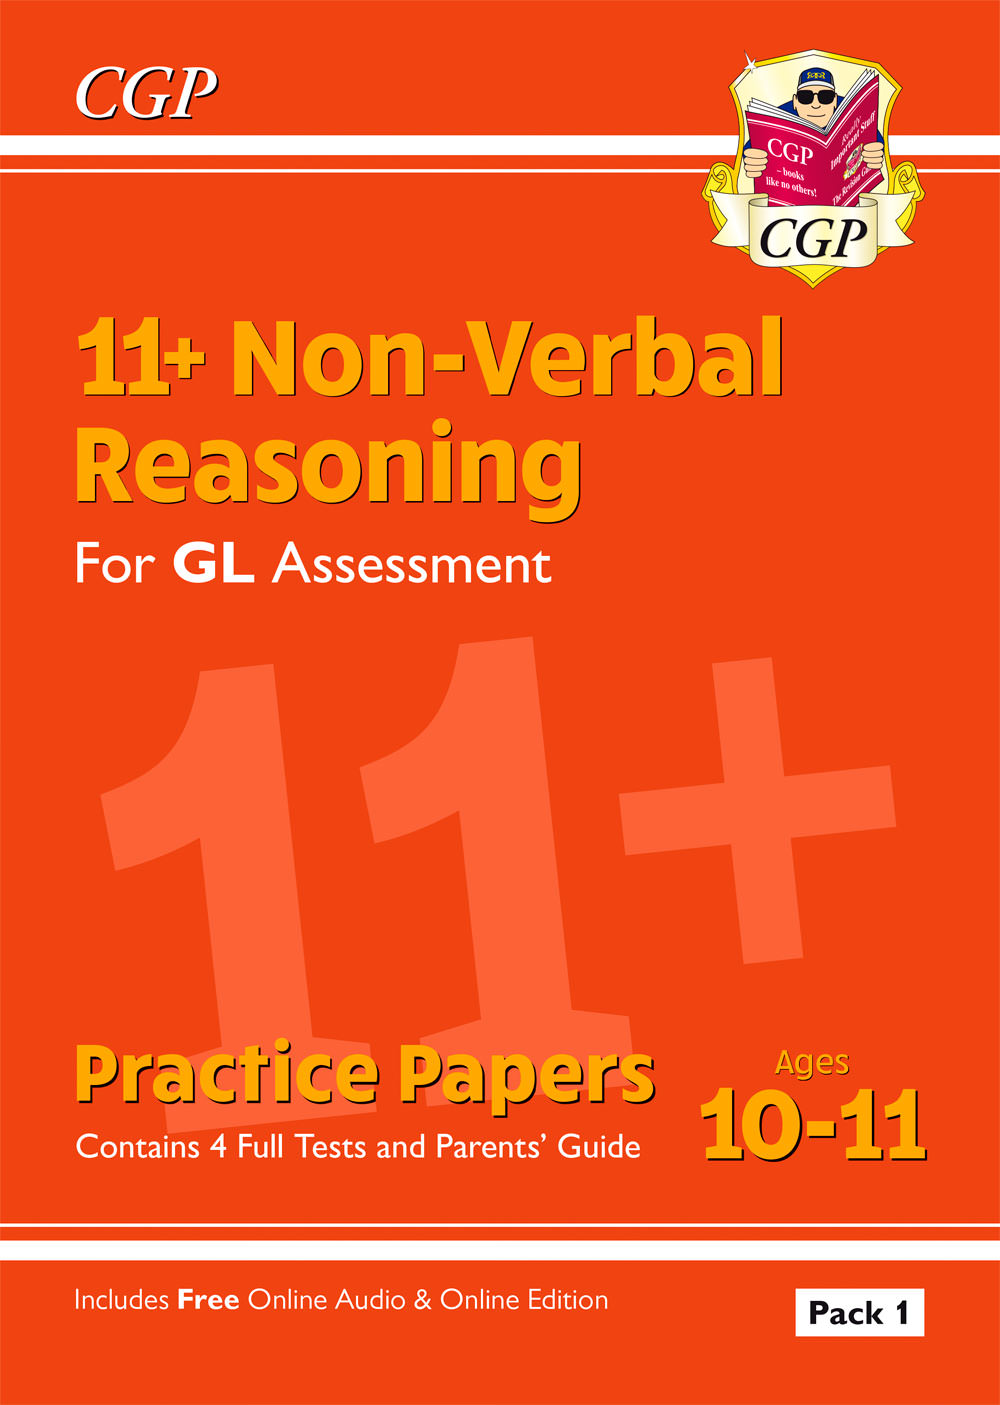 NHTE2 - New 11+ GL Non-Verbal Reasoning Practice Papers: Ages 10-11 Pack 1 (inc Parents' Guide & Onl